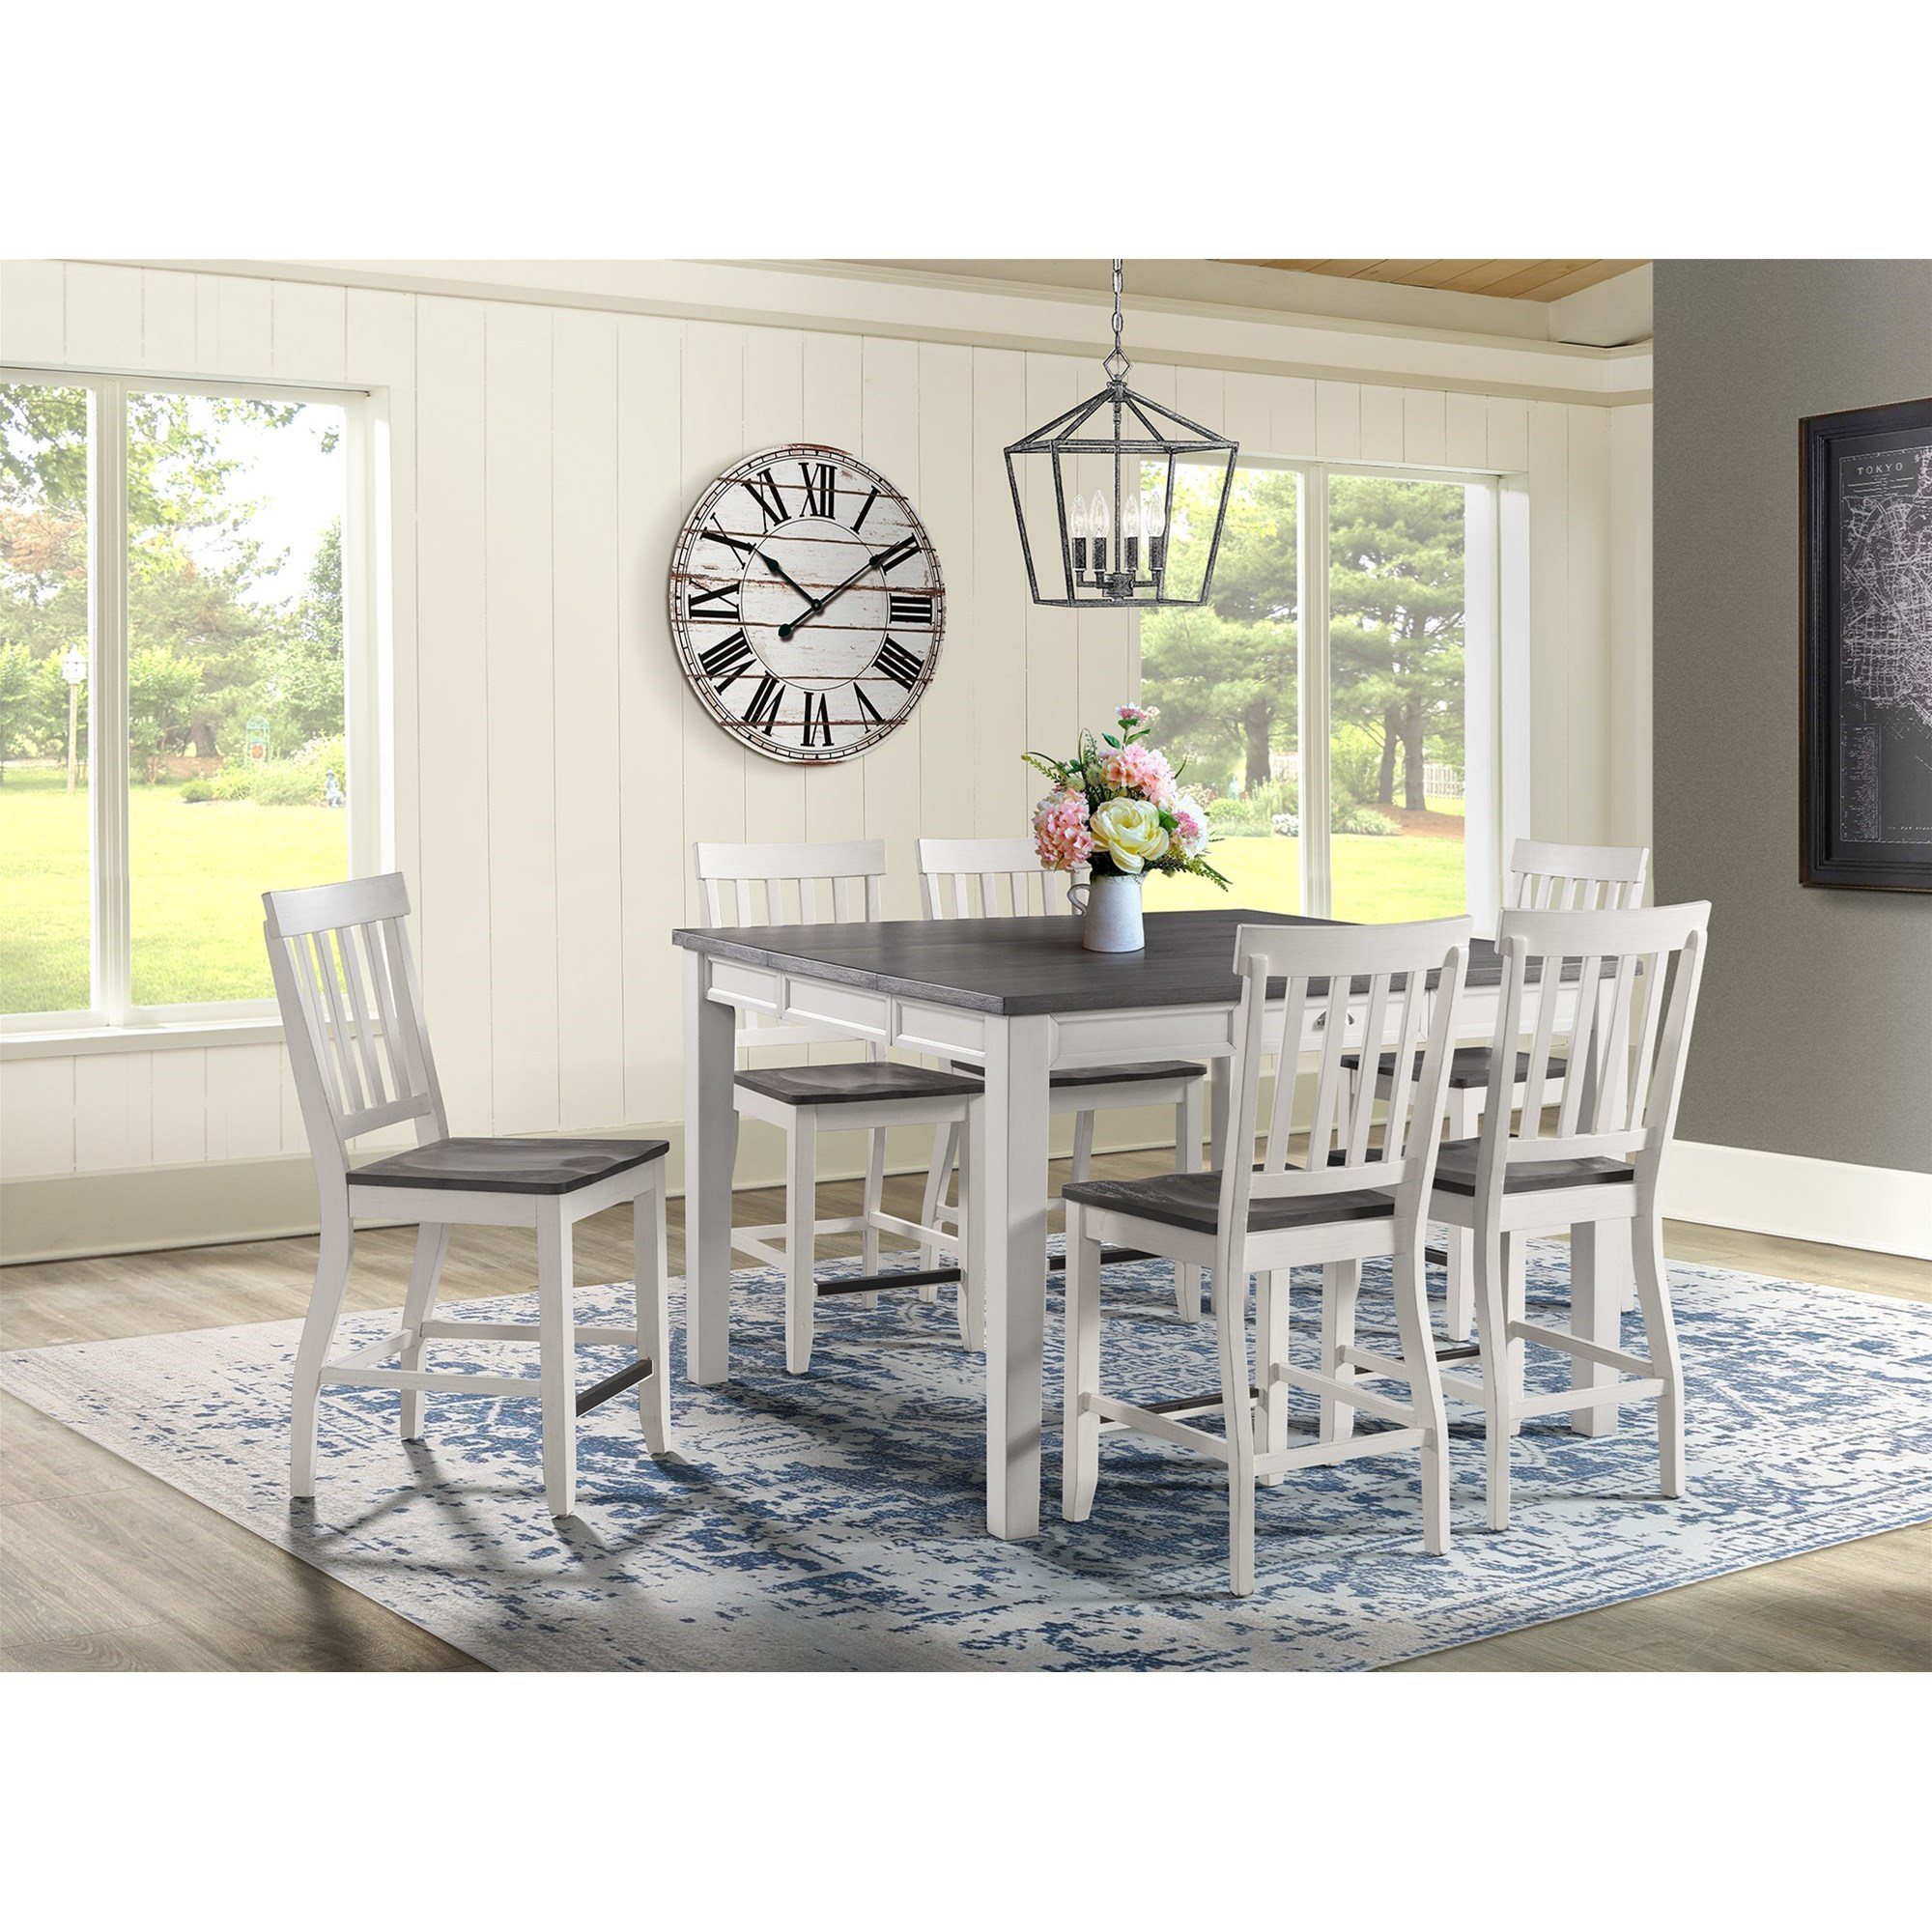 Kayla 7-Piece Counter Height Dining Set by Elements International at Johnny Janosik